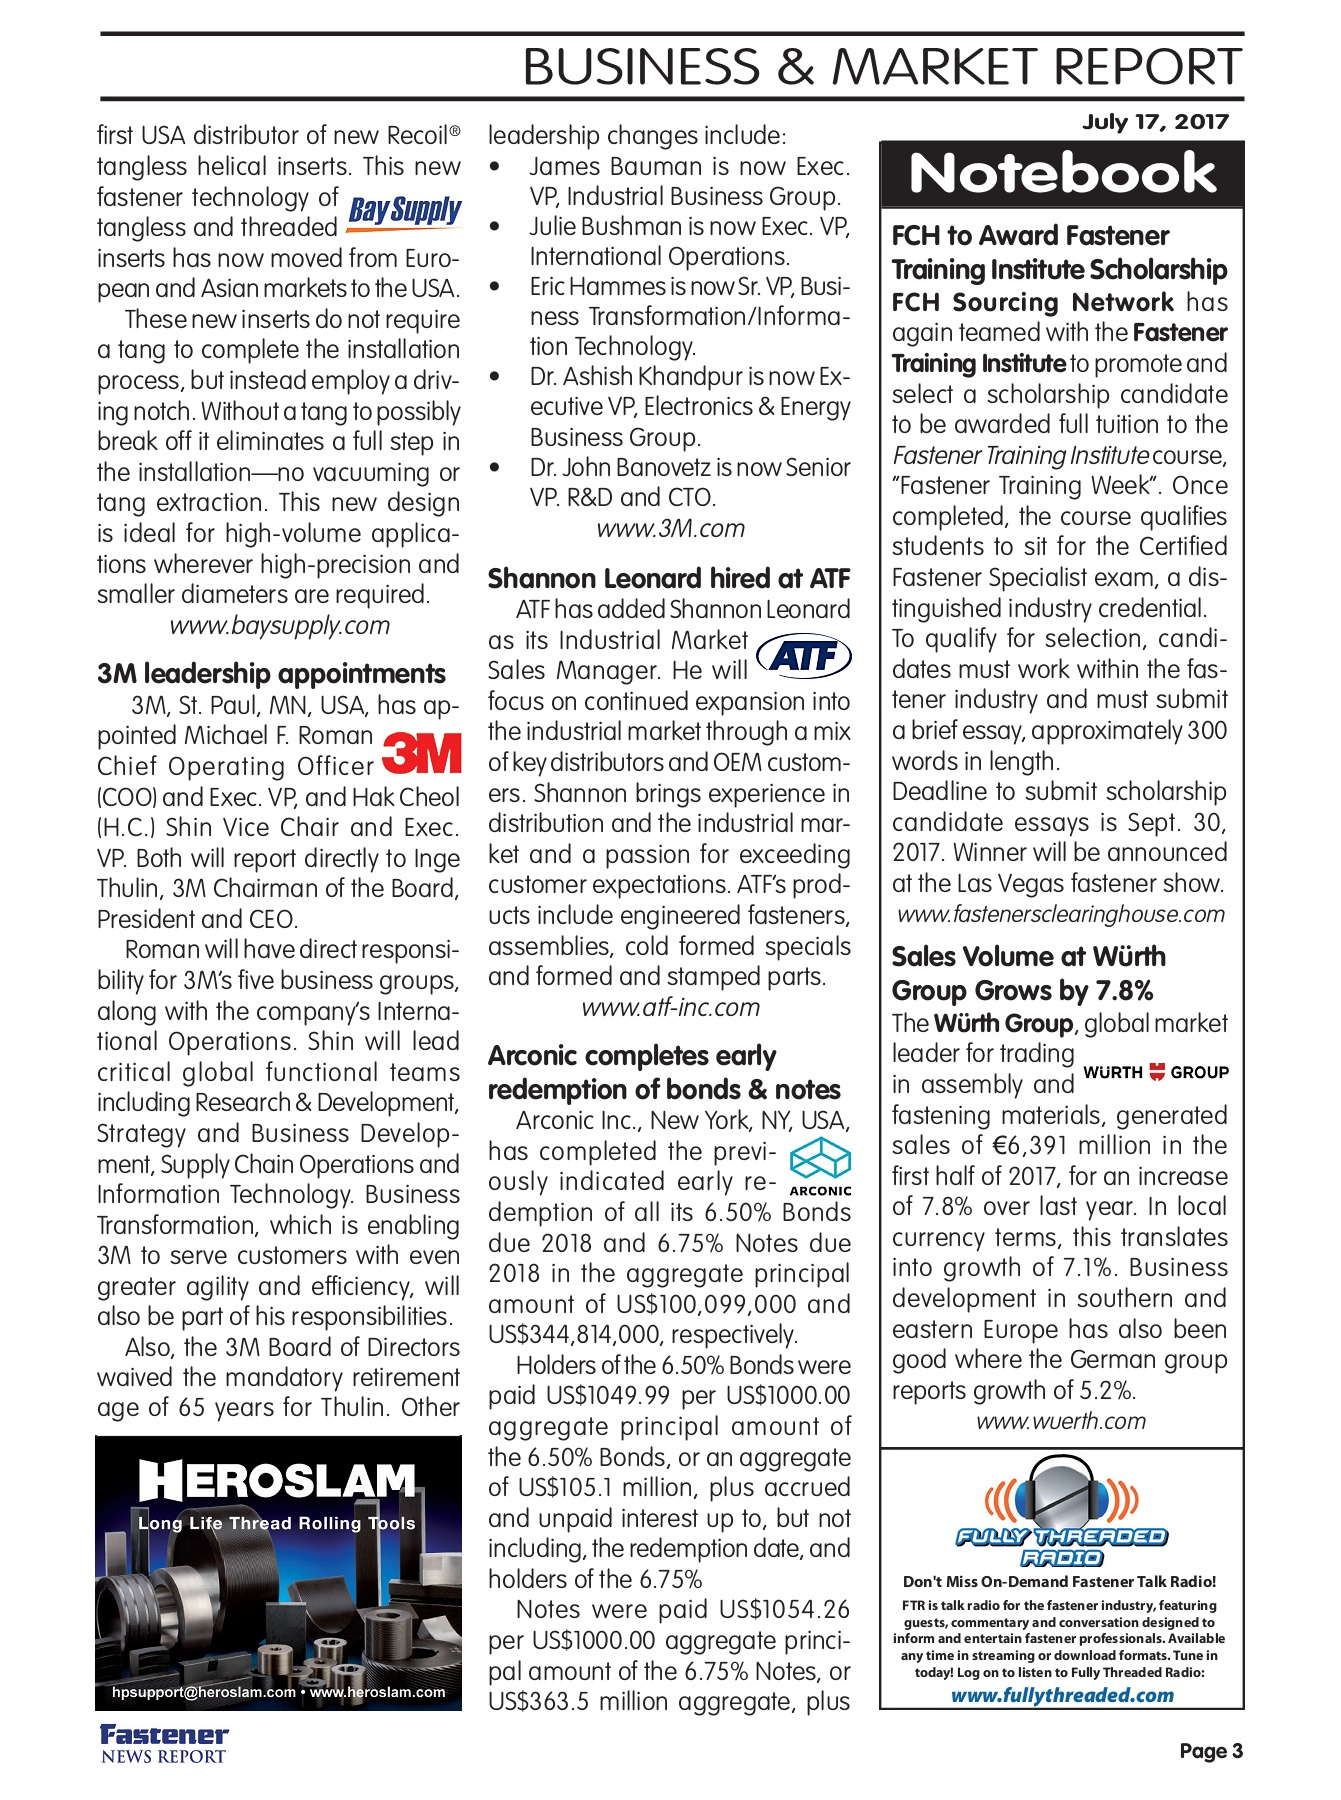 Fastener News Report July 17 Flipbook Edittion Pages 1 - 8 - Text